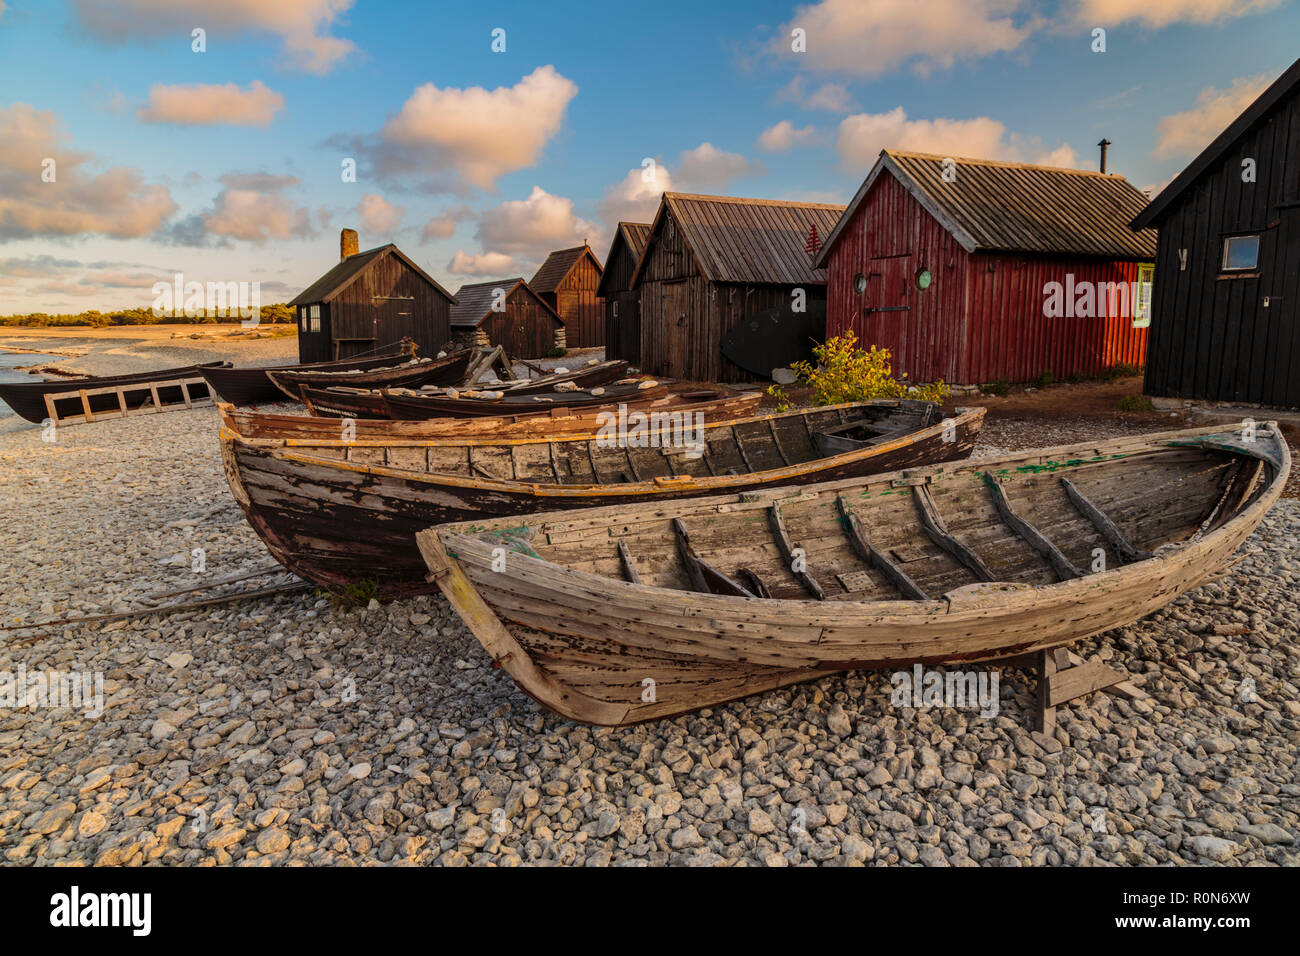 Helgumannen old fishing camp with rowing boats lying on the beach at sunset in warm evening light, Gotland, Sweden - Stock Image